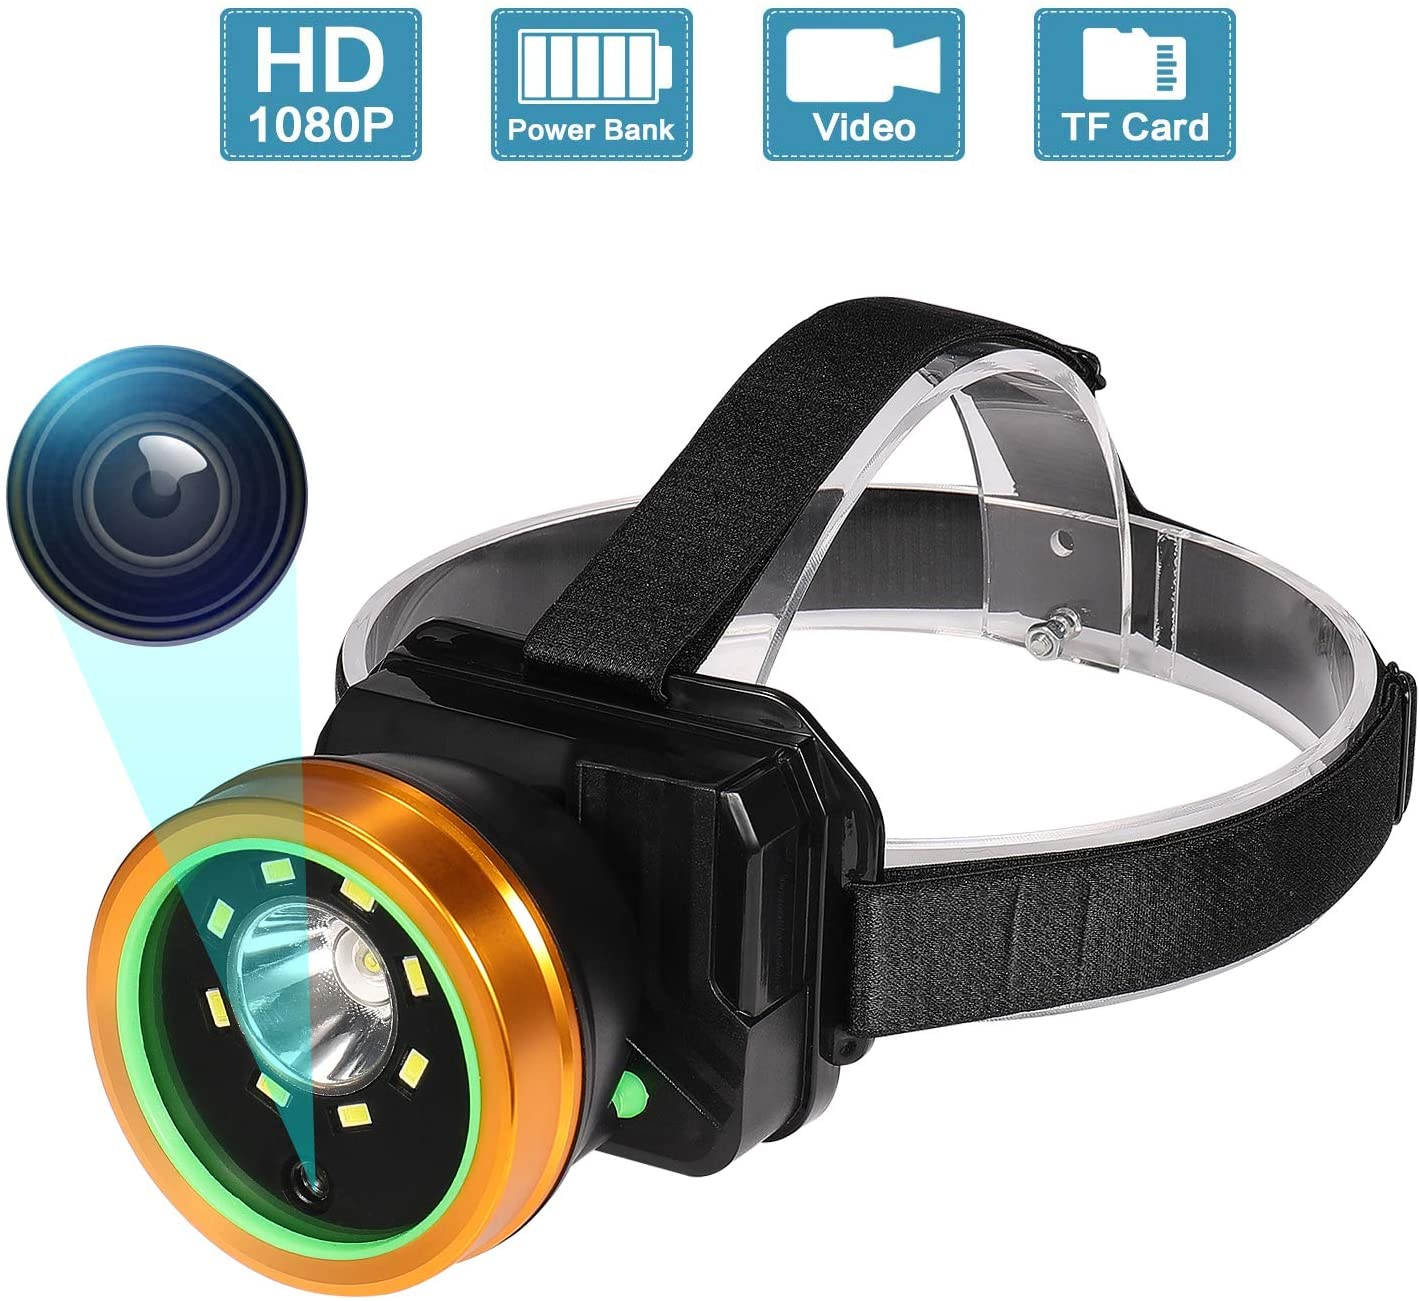 Headlamp Flashlight Camera, 1080P Adjustable Headlight Rechargeable IPX4 Waterproof Flashlight, Tiltable Hard Hat Work Light for House, Camping, Hiking,Fishing, Cellar with Night Vision Cam.